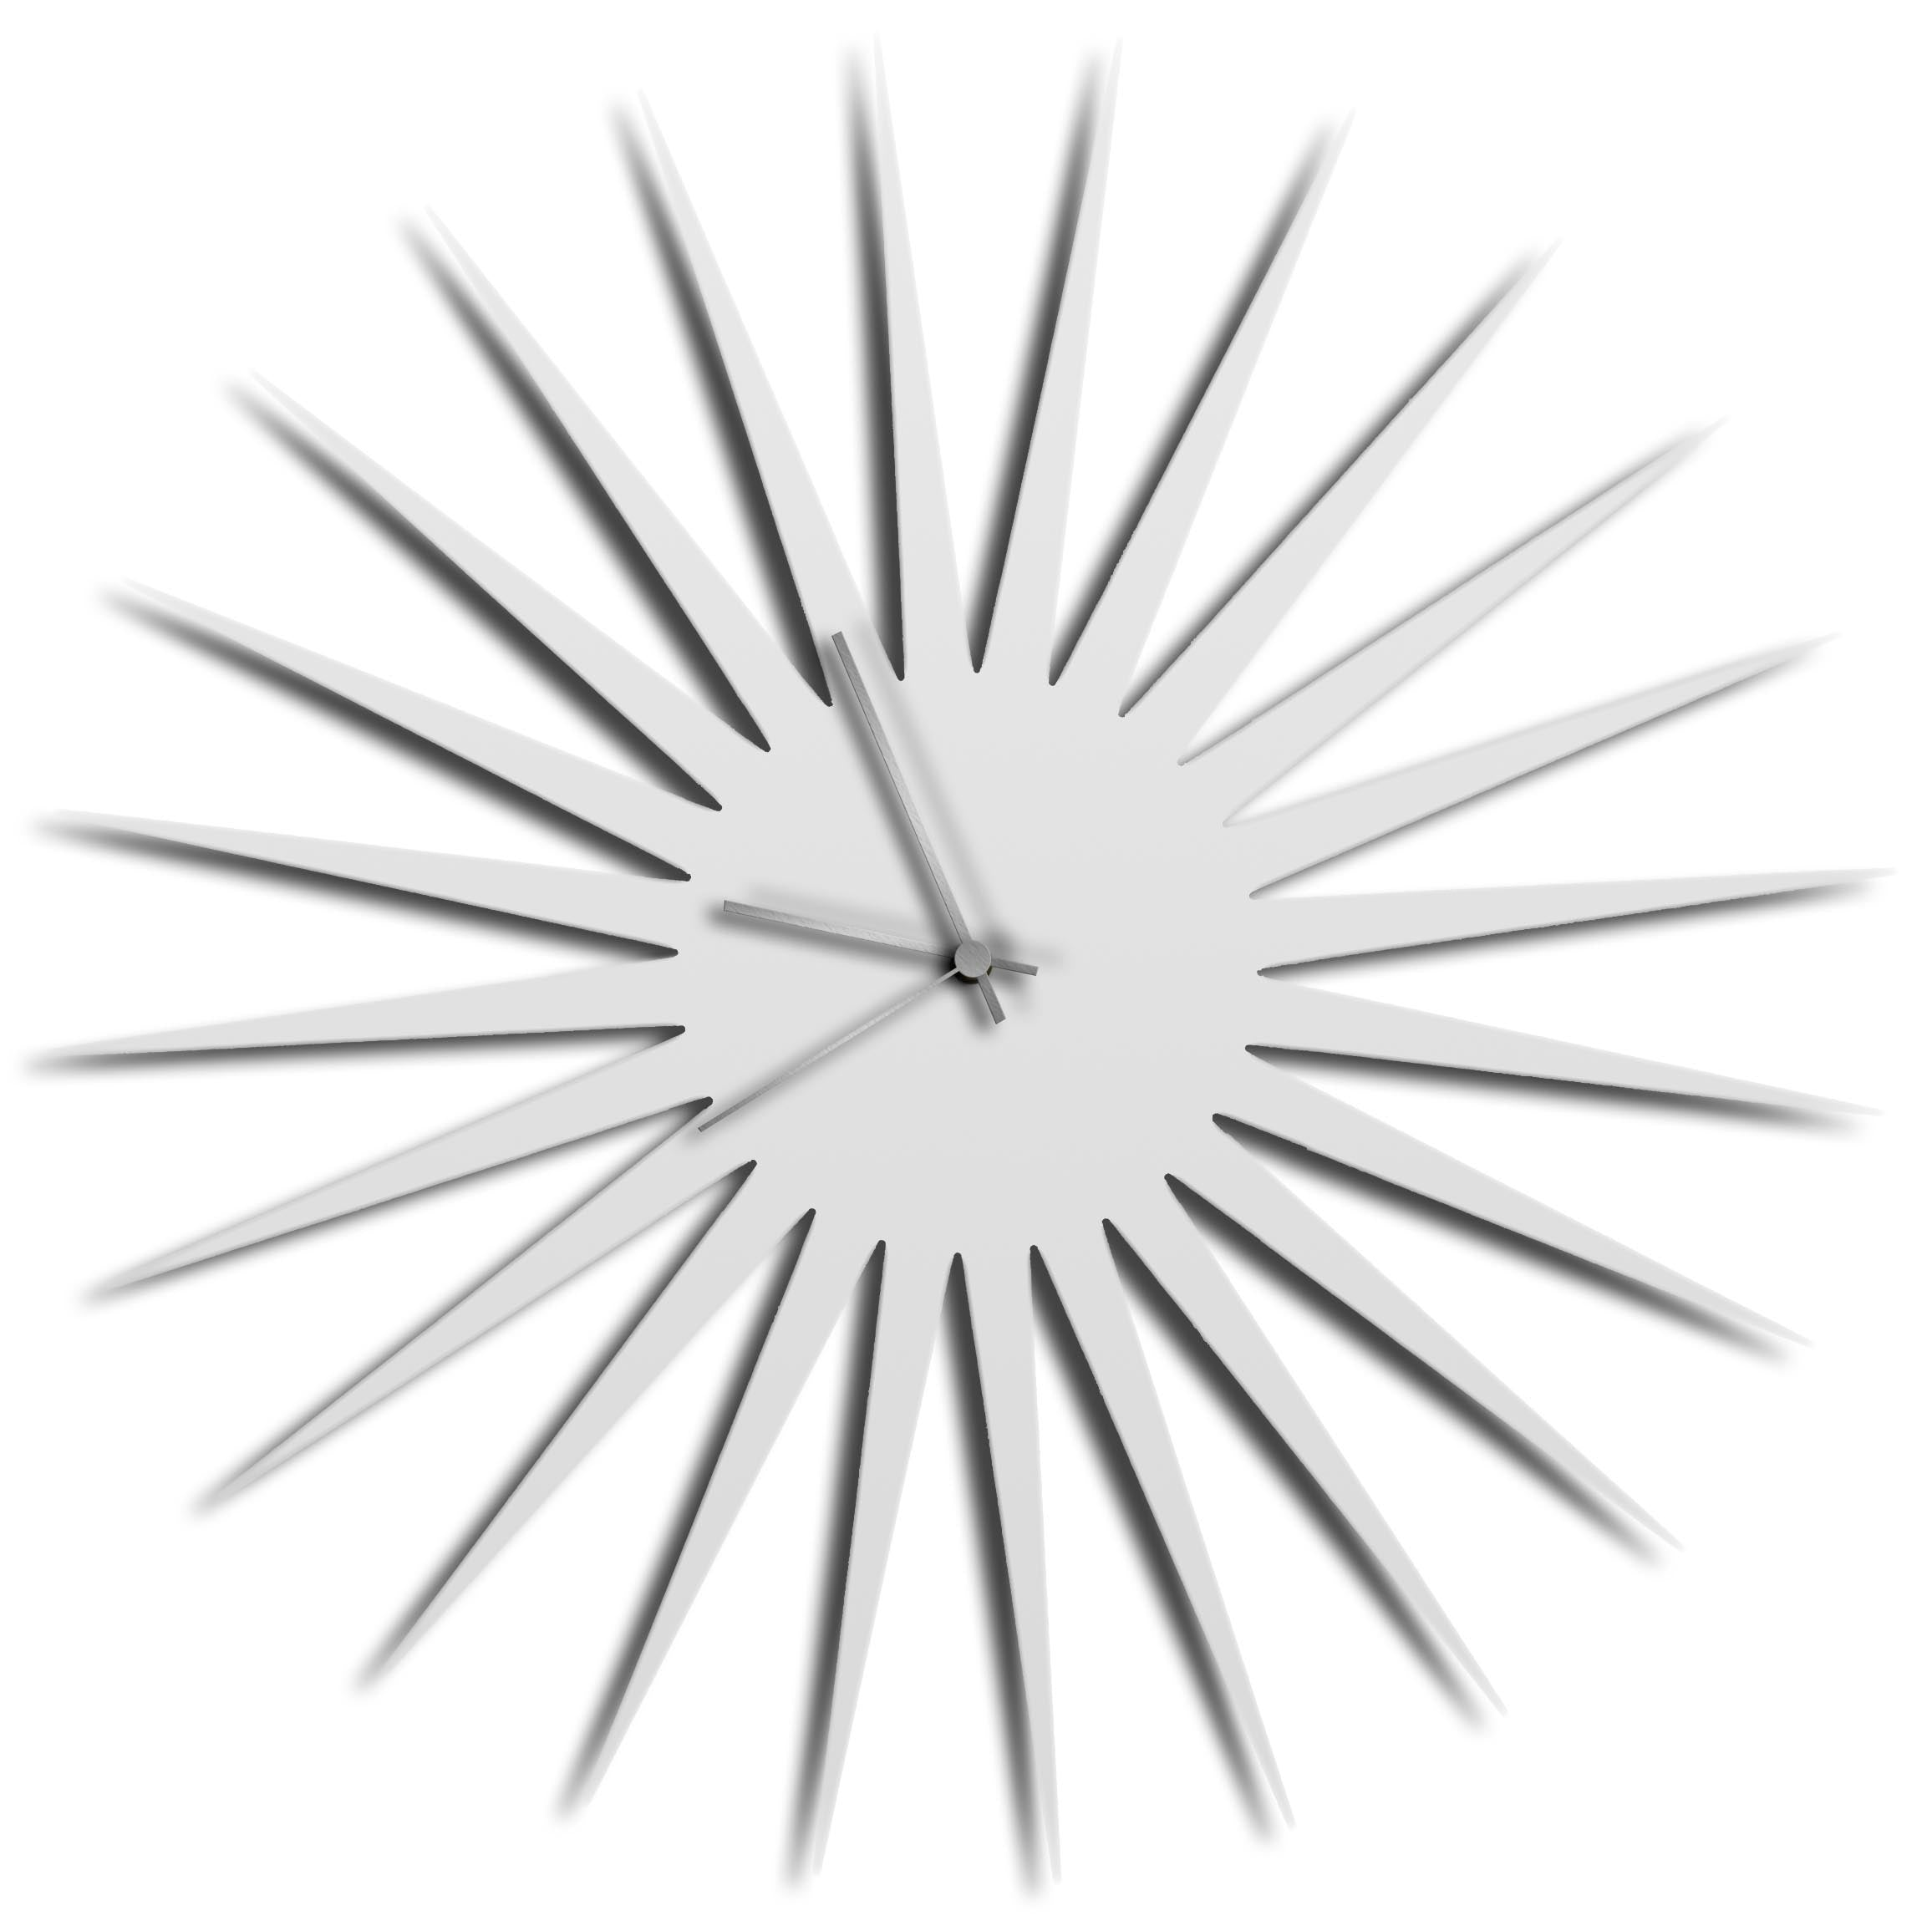 MCM Starburst Clock White Silver by Adam Schwoeppe - Mid-Century Modern Wall Clock on Brushed White Polymetal